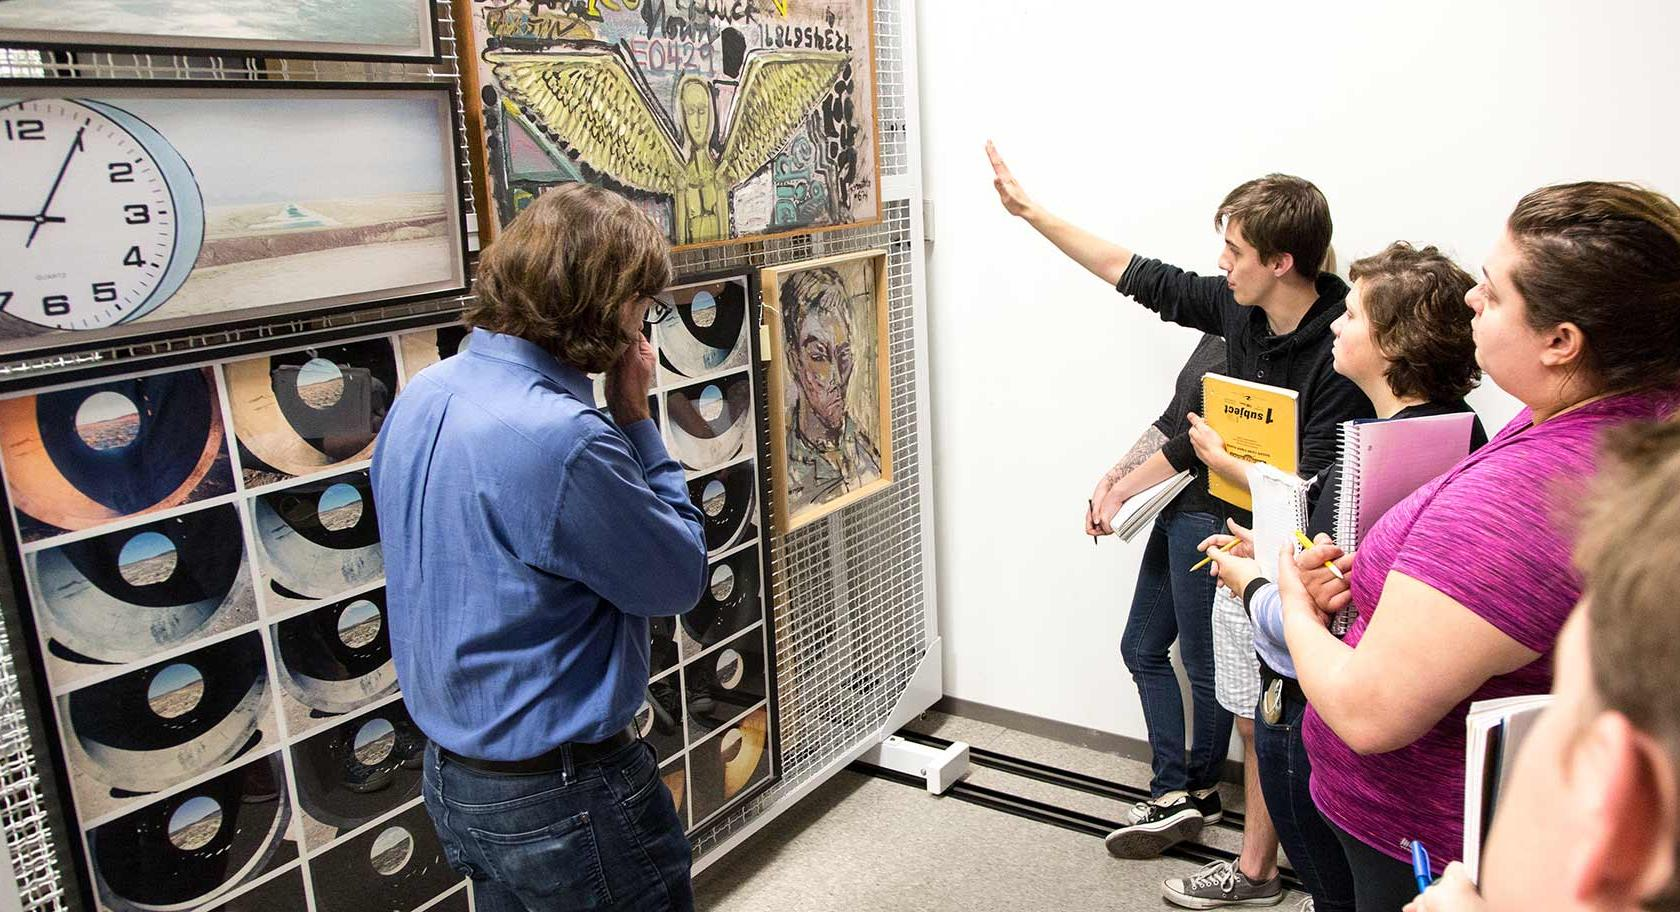 U of U Art History Professor Monty Perret and students discusses Robert Smithon's paintings in the UMFA's collections storage.